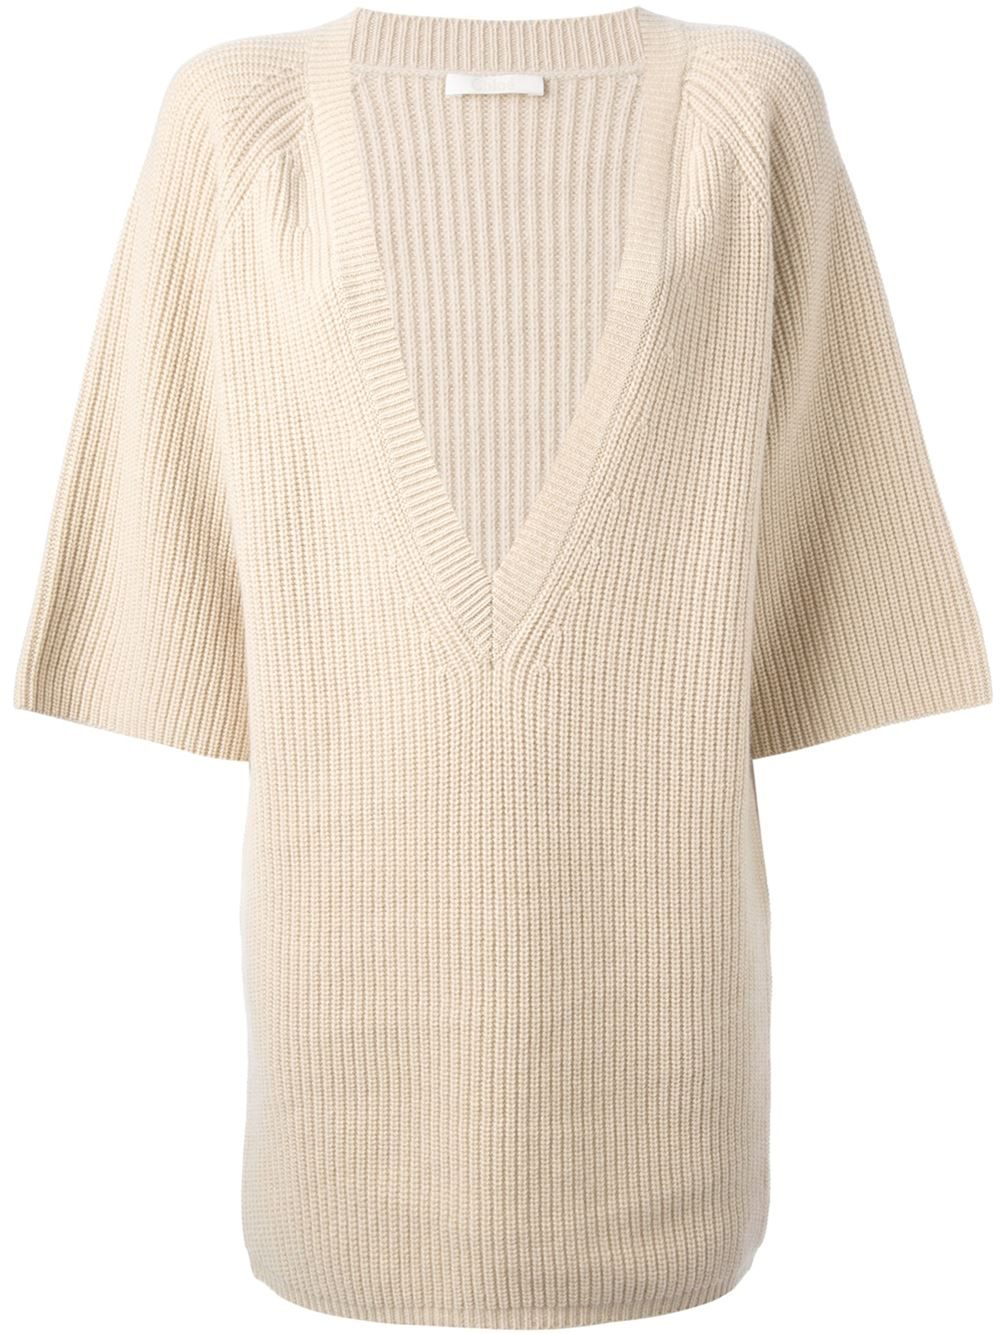 Chloé oversized sweater